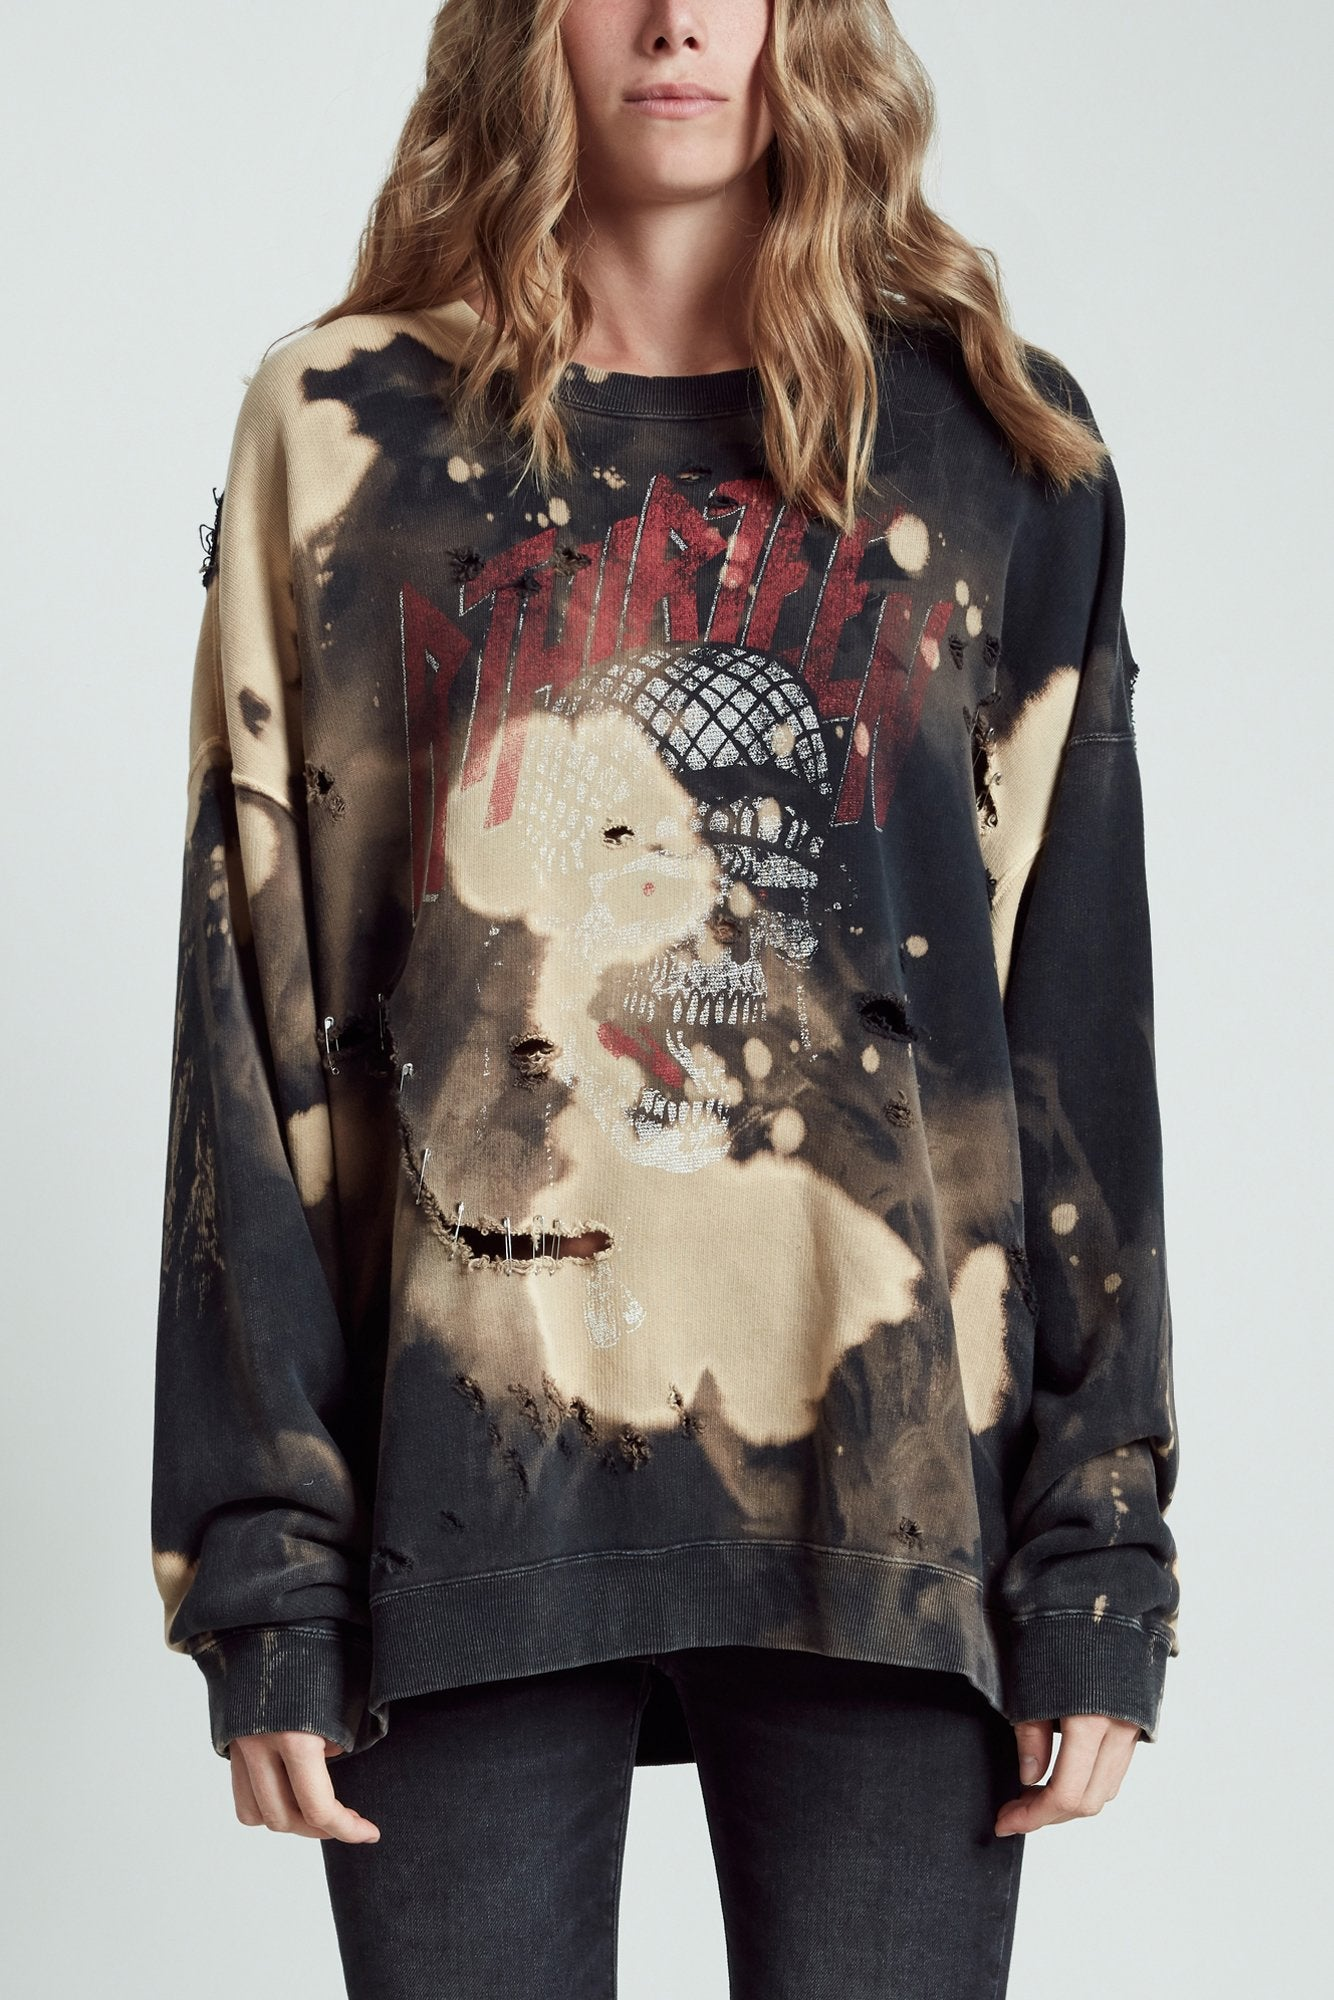 Battle Punk Oversized Crewneck - Bleach